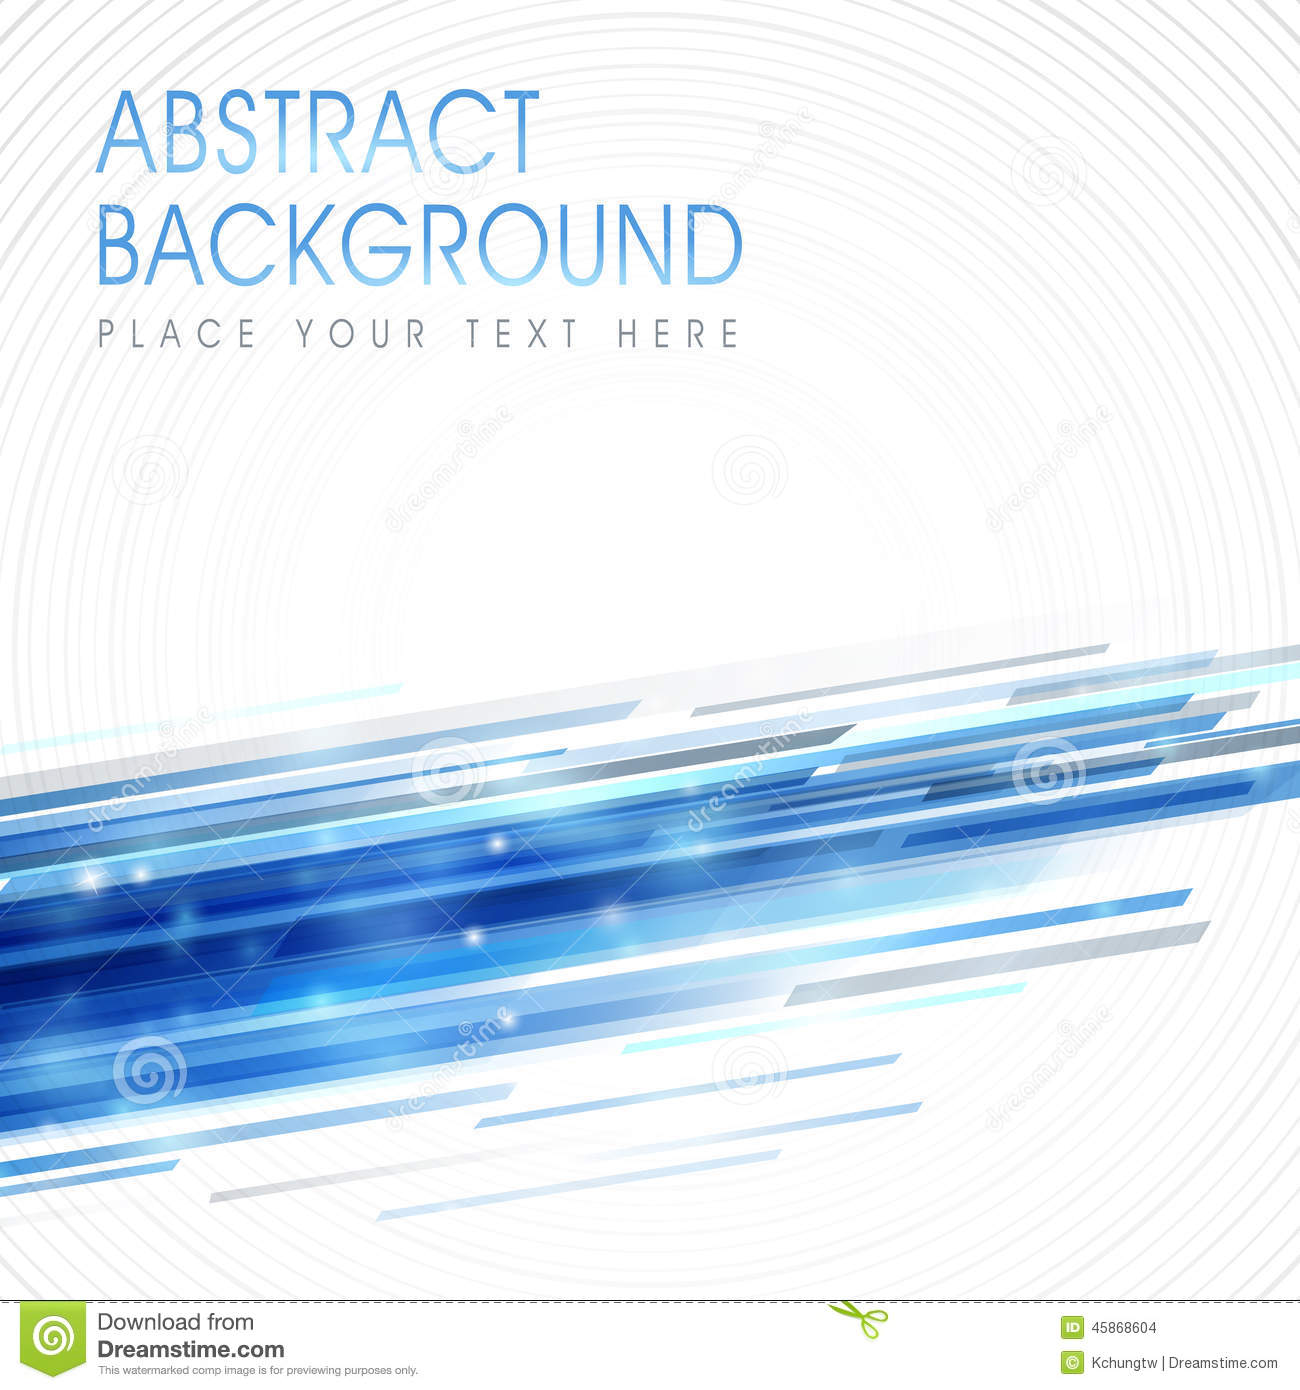 Poster backgrounds design -  Abstract Background Design Poster Download